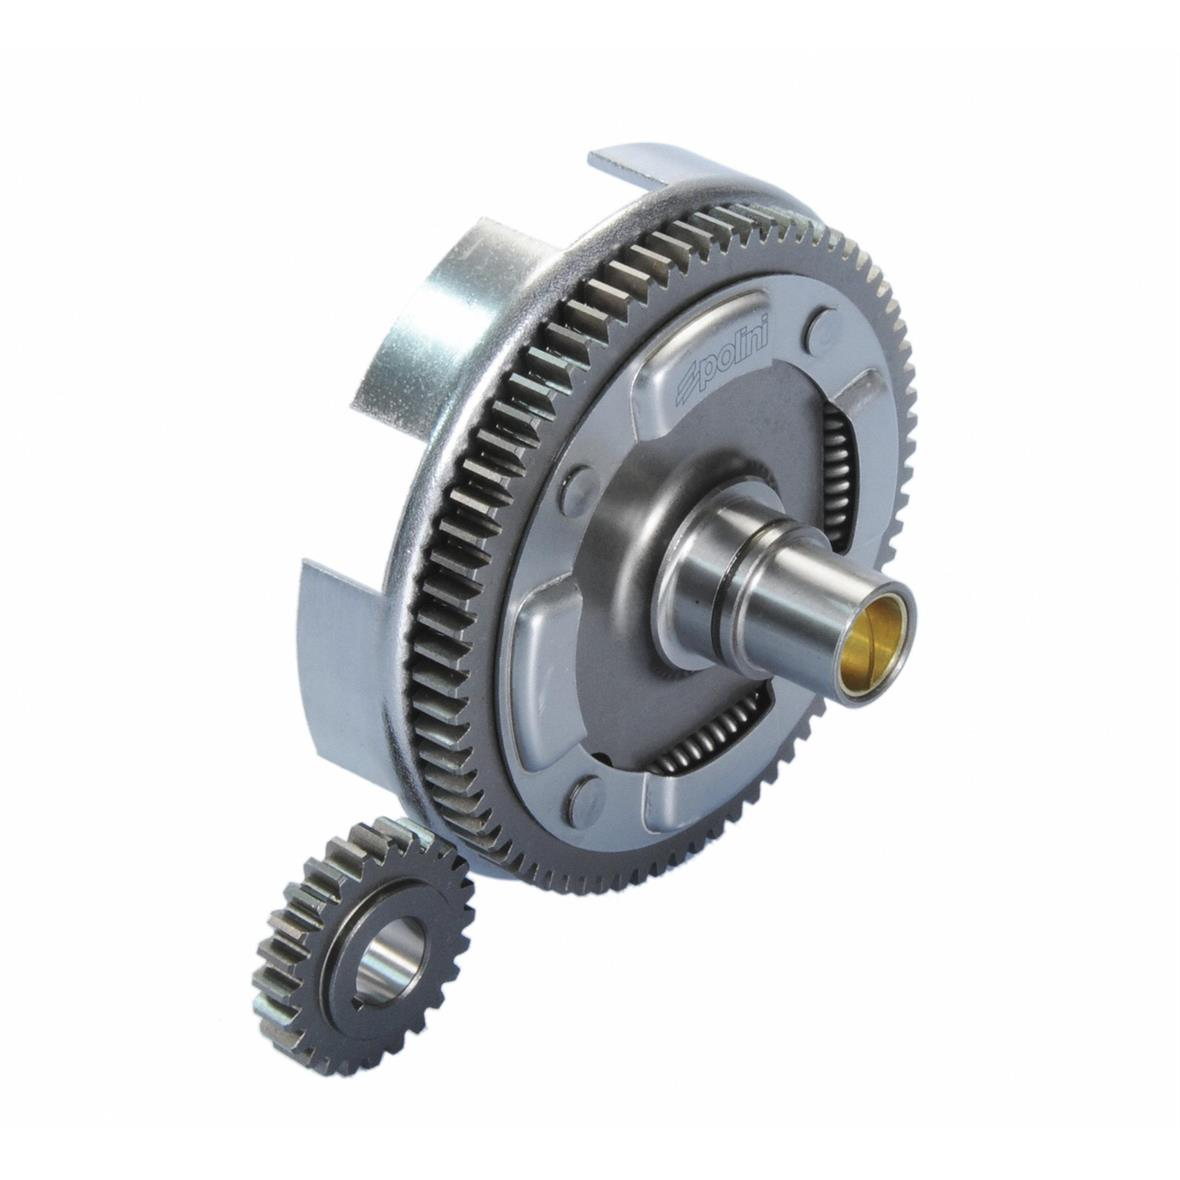 Product Image for 'Gearbox 27/69, (2.56) teeth POLINI SportTitle'